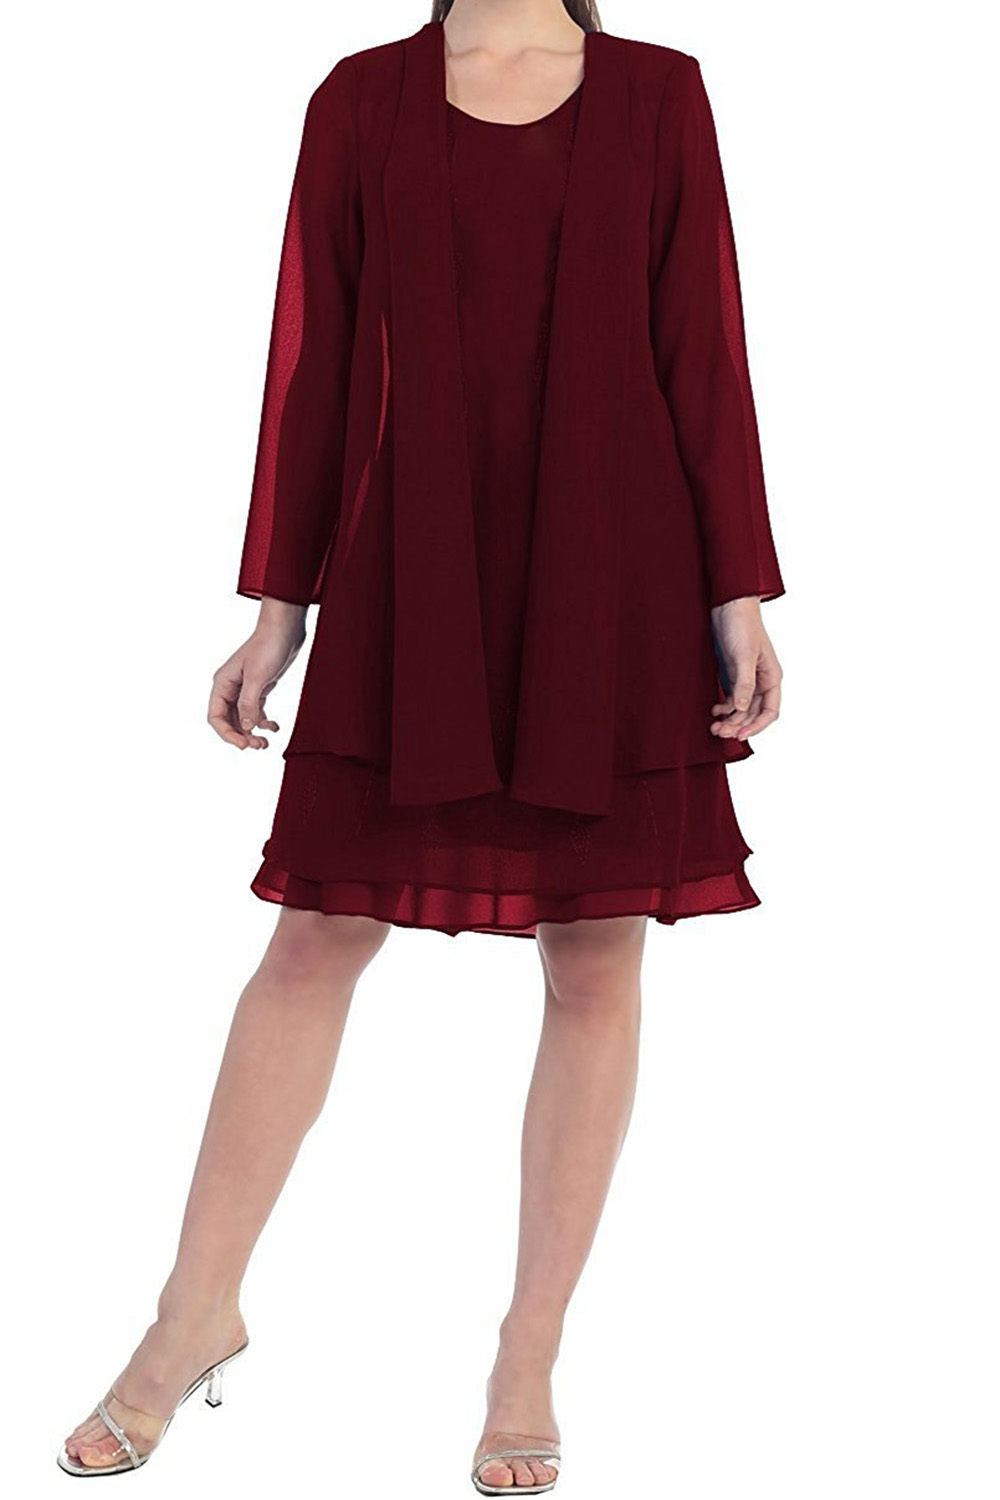 Mother-Of-The-Bride-Dress Jacket Long-Sleeves Chiffon Wedding Burgundy Elegant Women title=